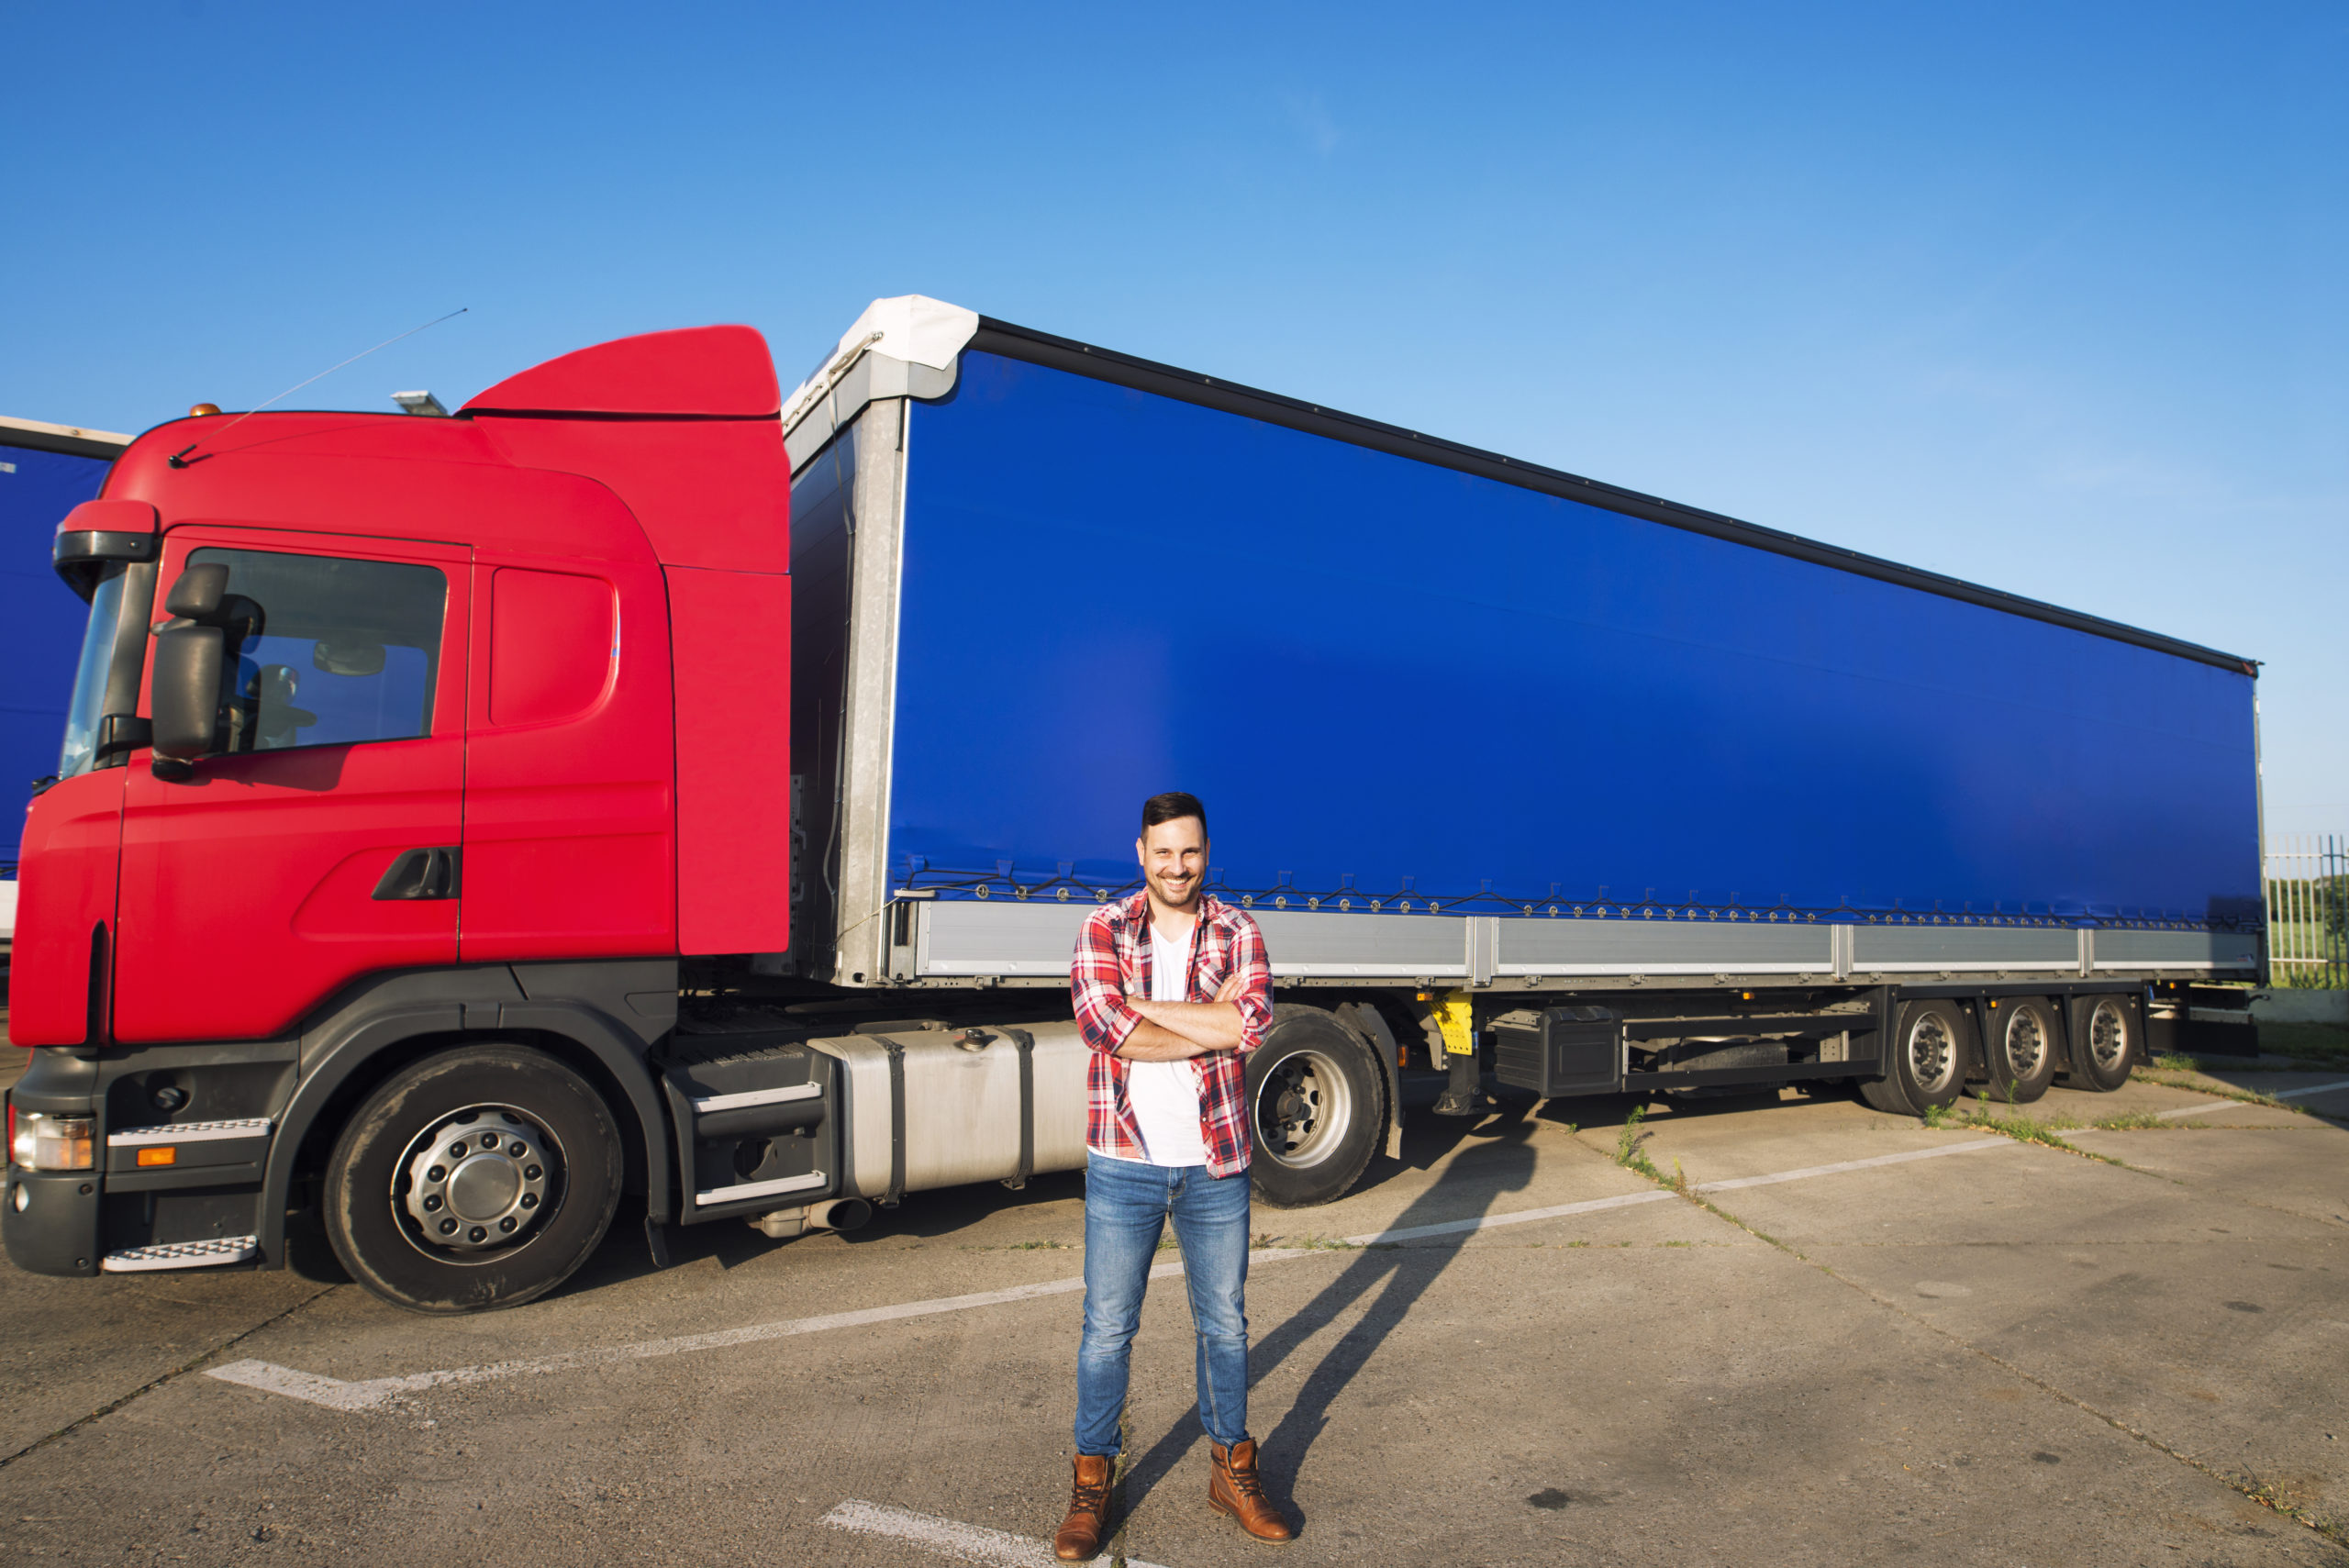 Portrait of professional American truck driver in casual clothing and boots standing in front of truck vehicle with long trailer.